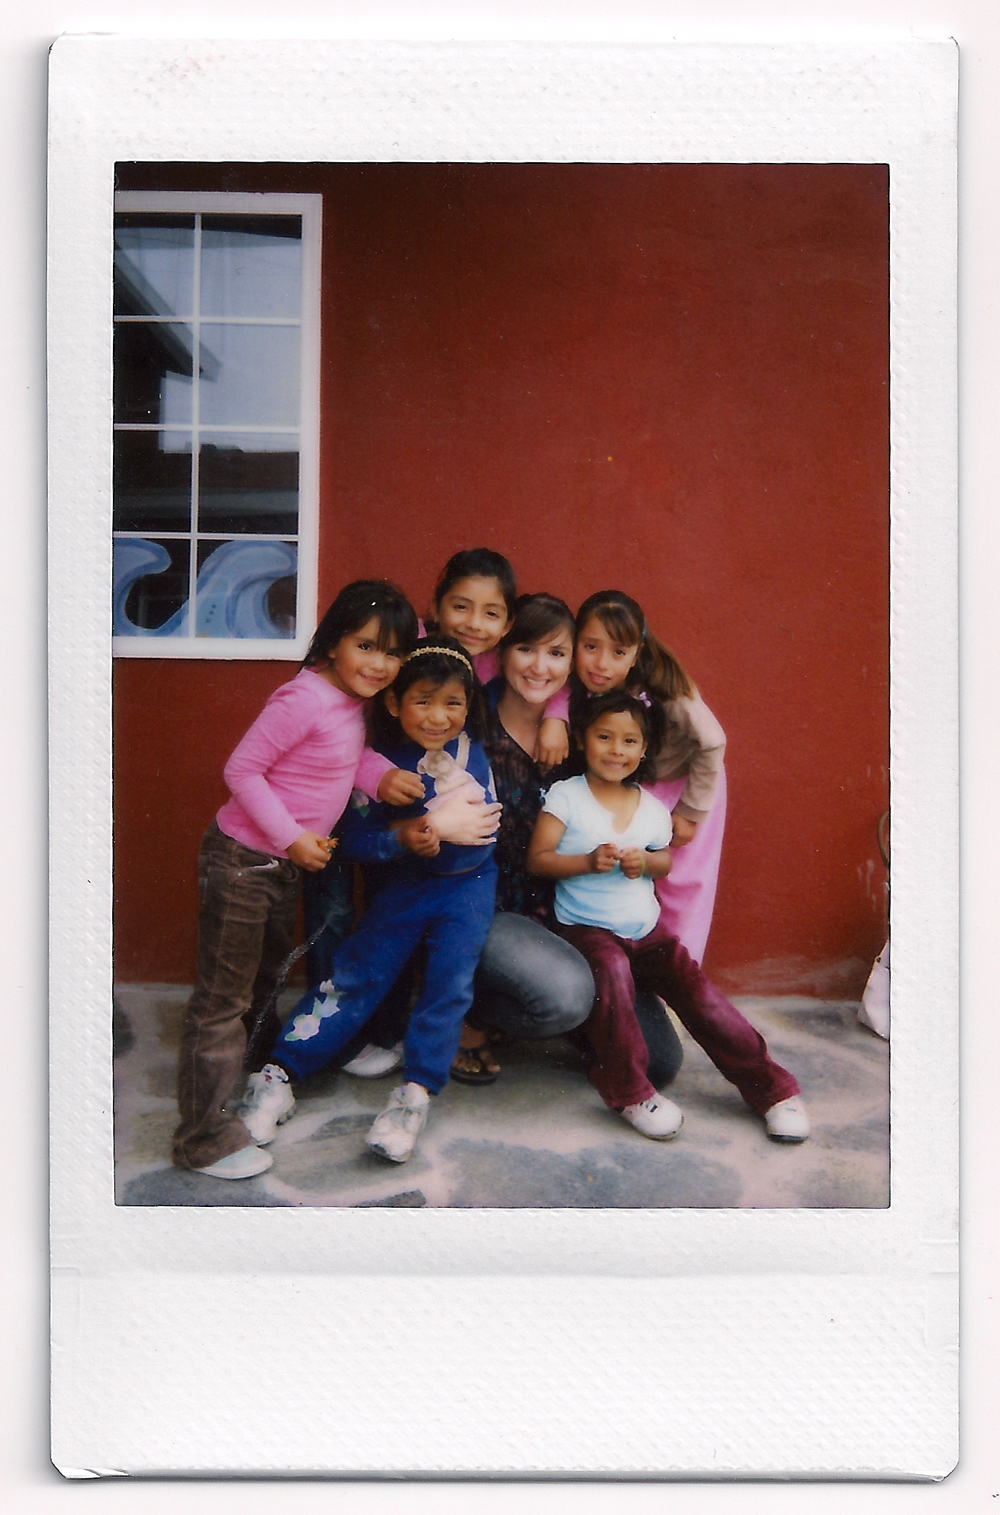 Me and mi amigas at Open Arms Childcare Ministries in La Mision, Mexico. Summer 2010